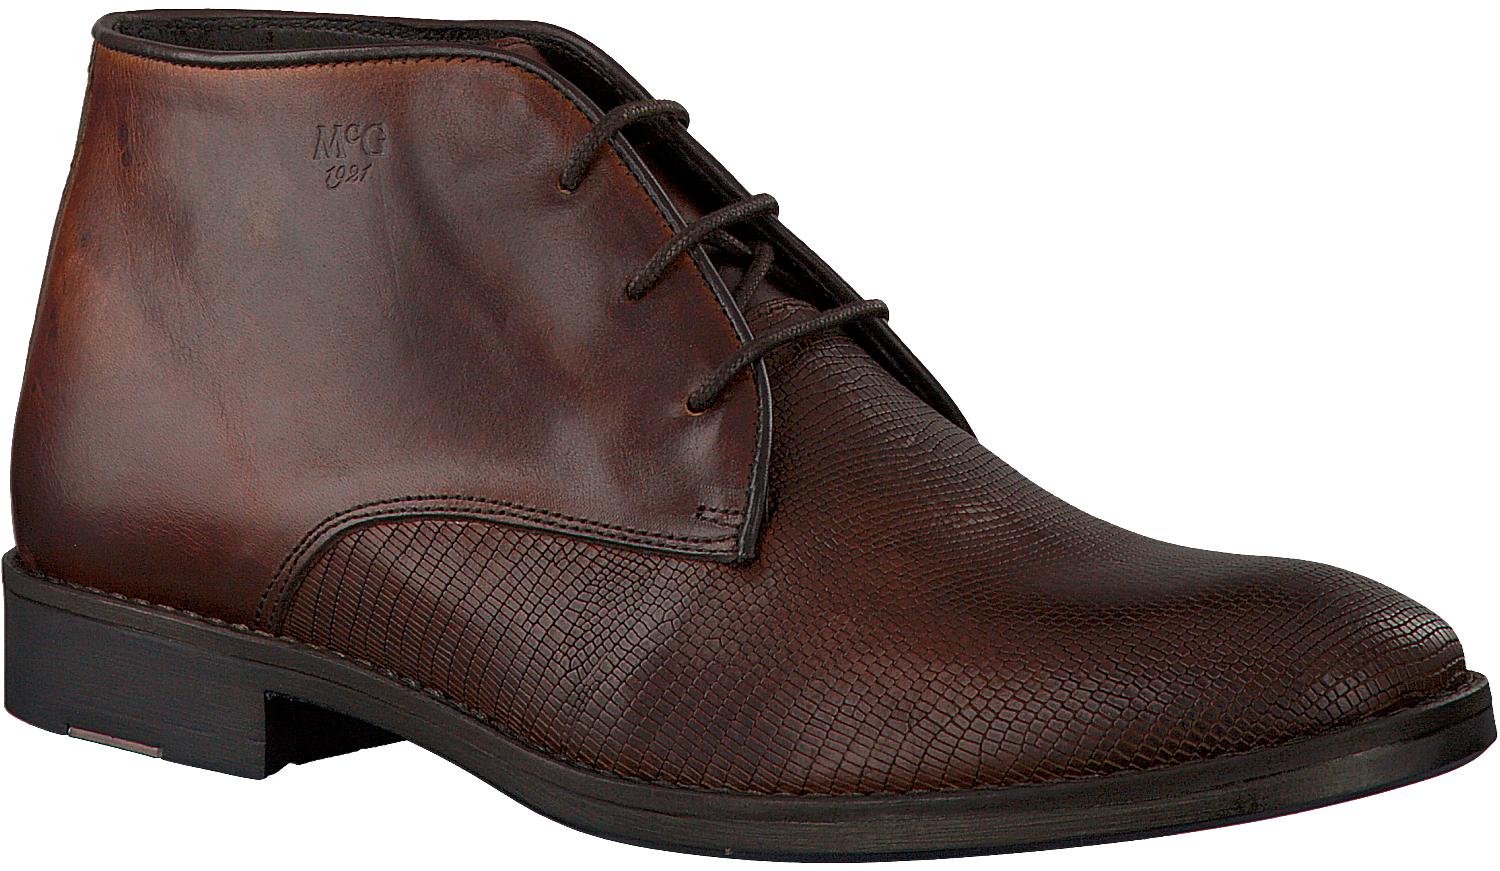 247412f9772 Cognac MCGREGOR Nette schoenen FIRENZE. MCGREGOR. -40%. Previous